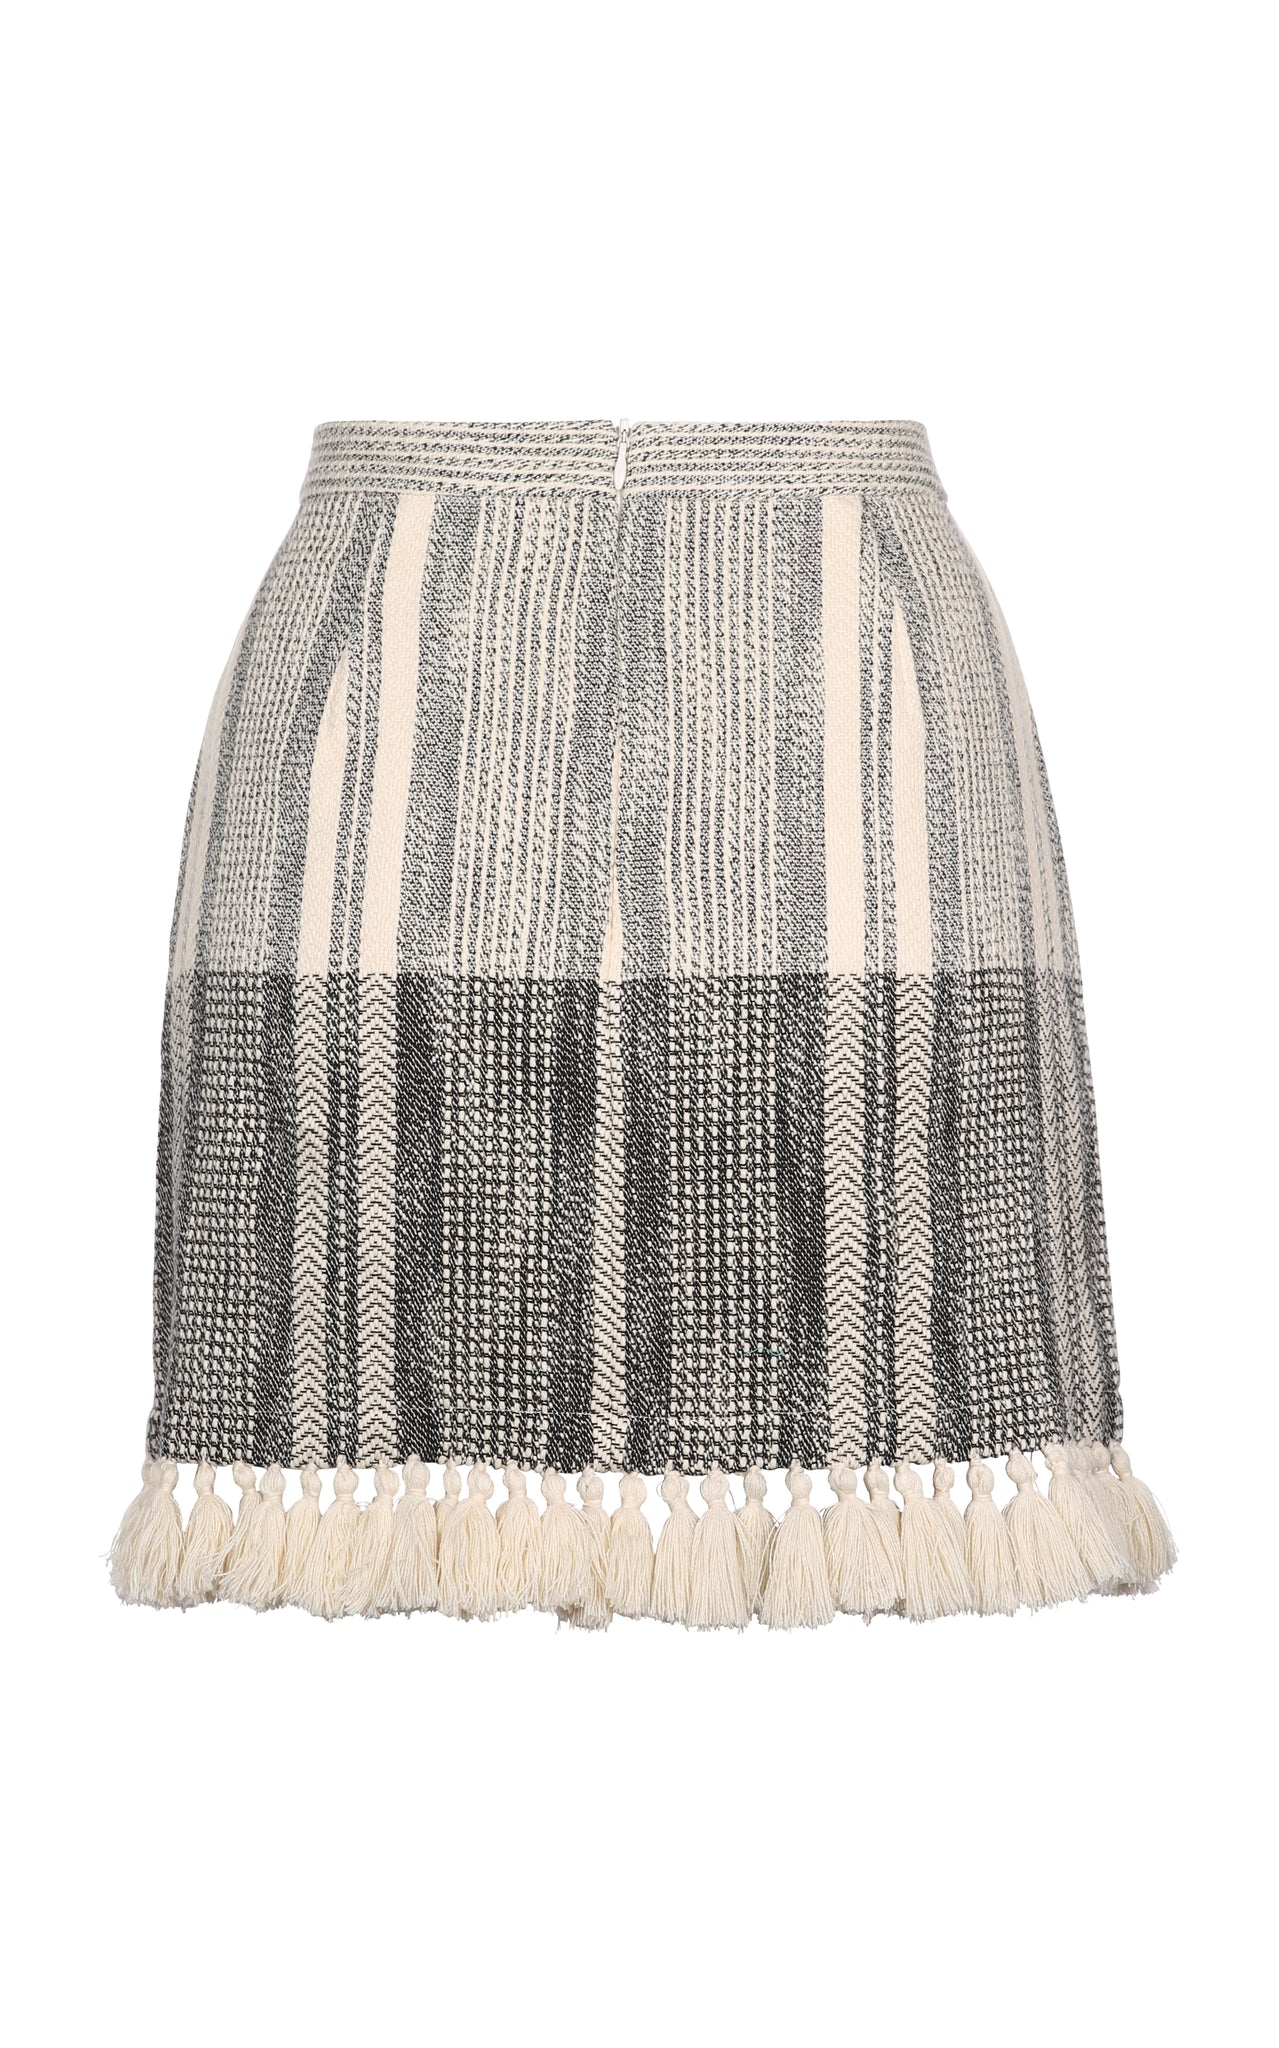 PERSEA SKIRT IN GREY